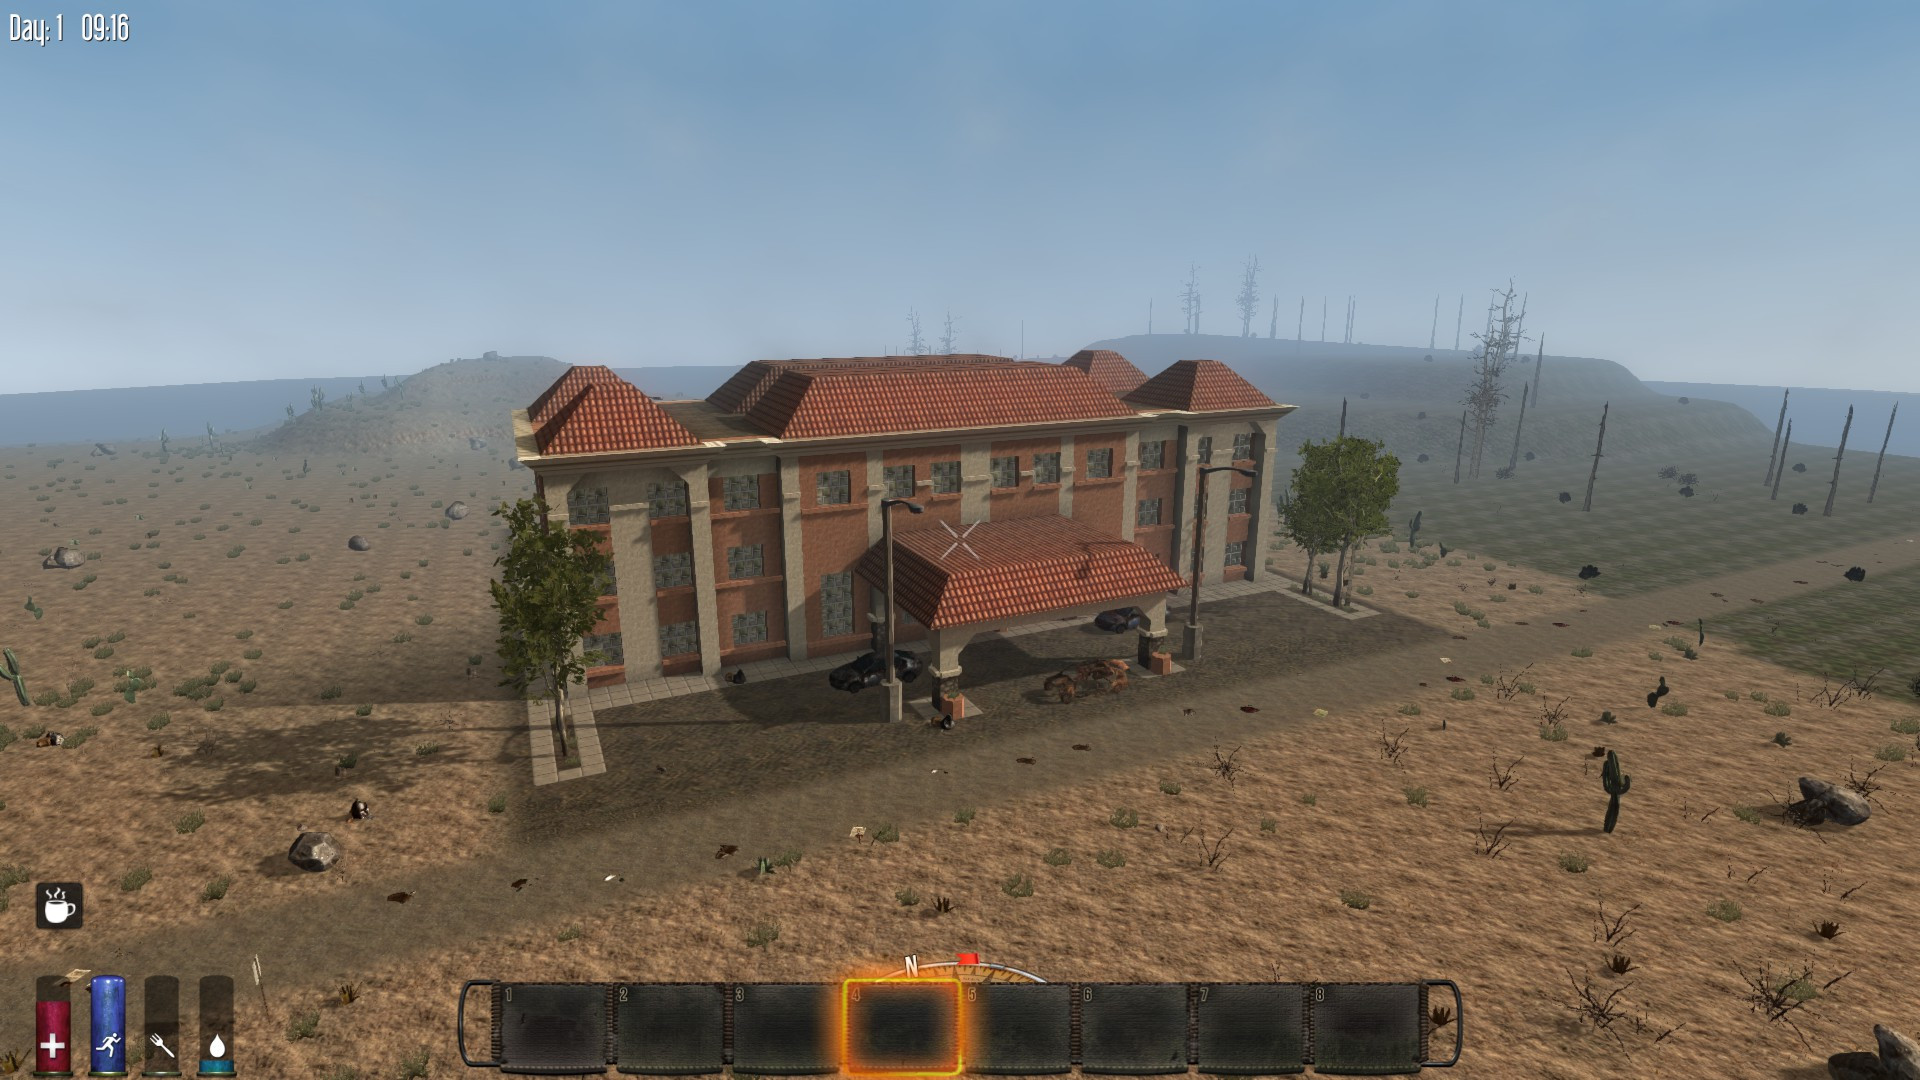 7 Days To Die Printable Map Awesome Steam Munity Guide 7 Days To Die Biomes Poi Locations Alpha